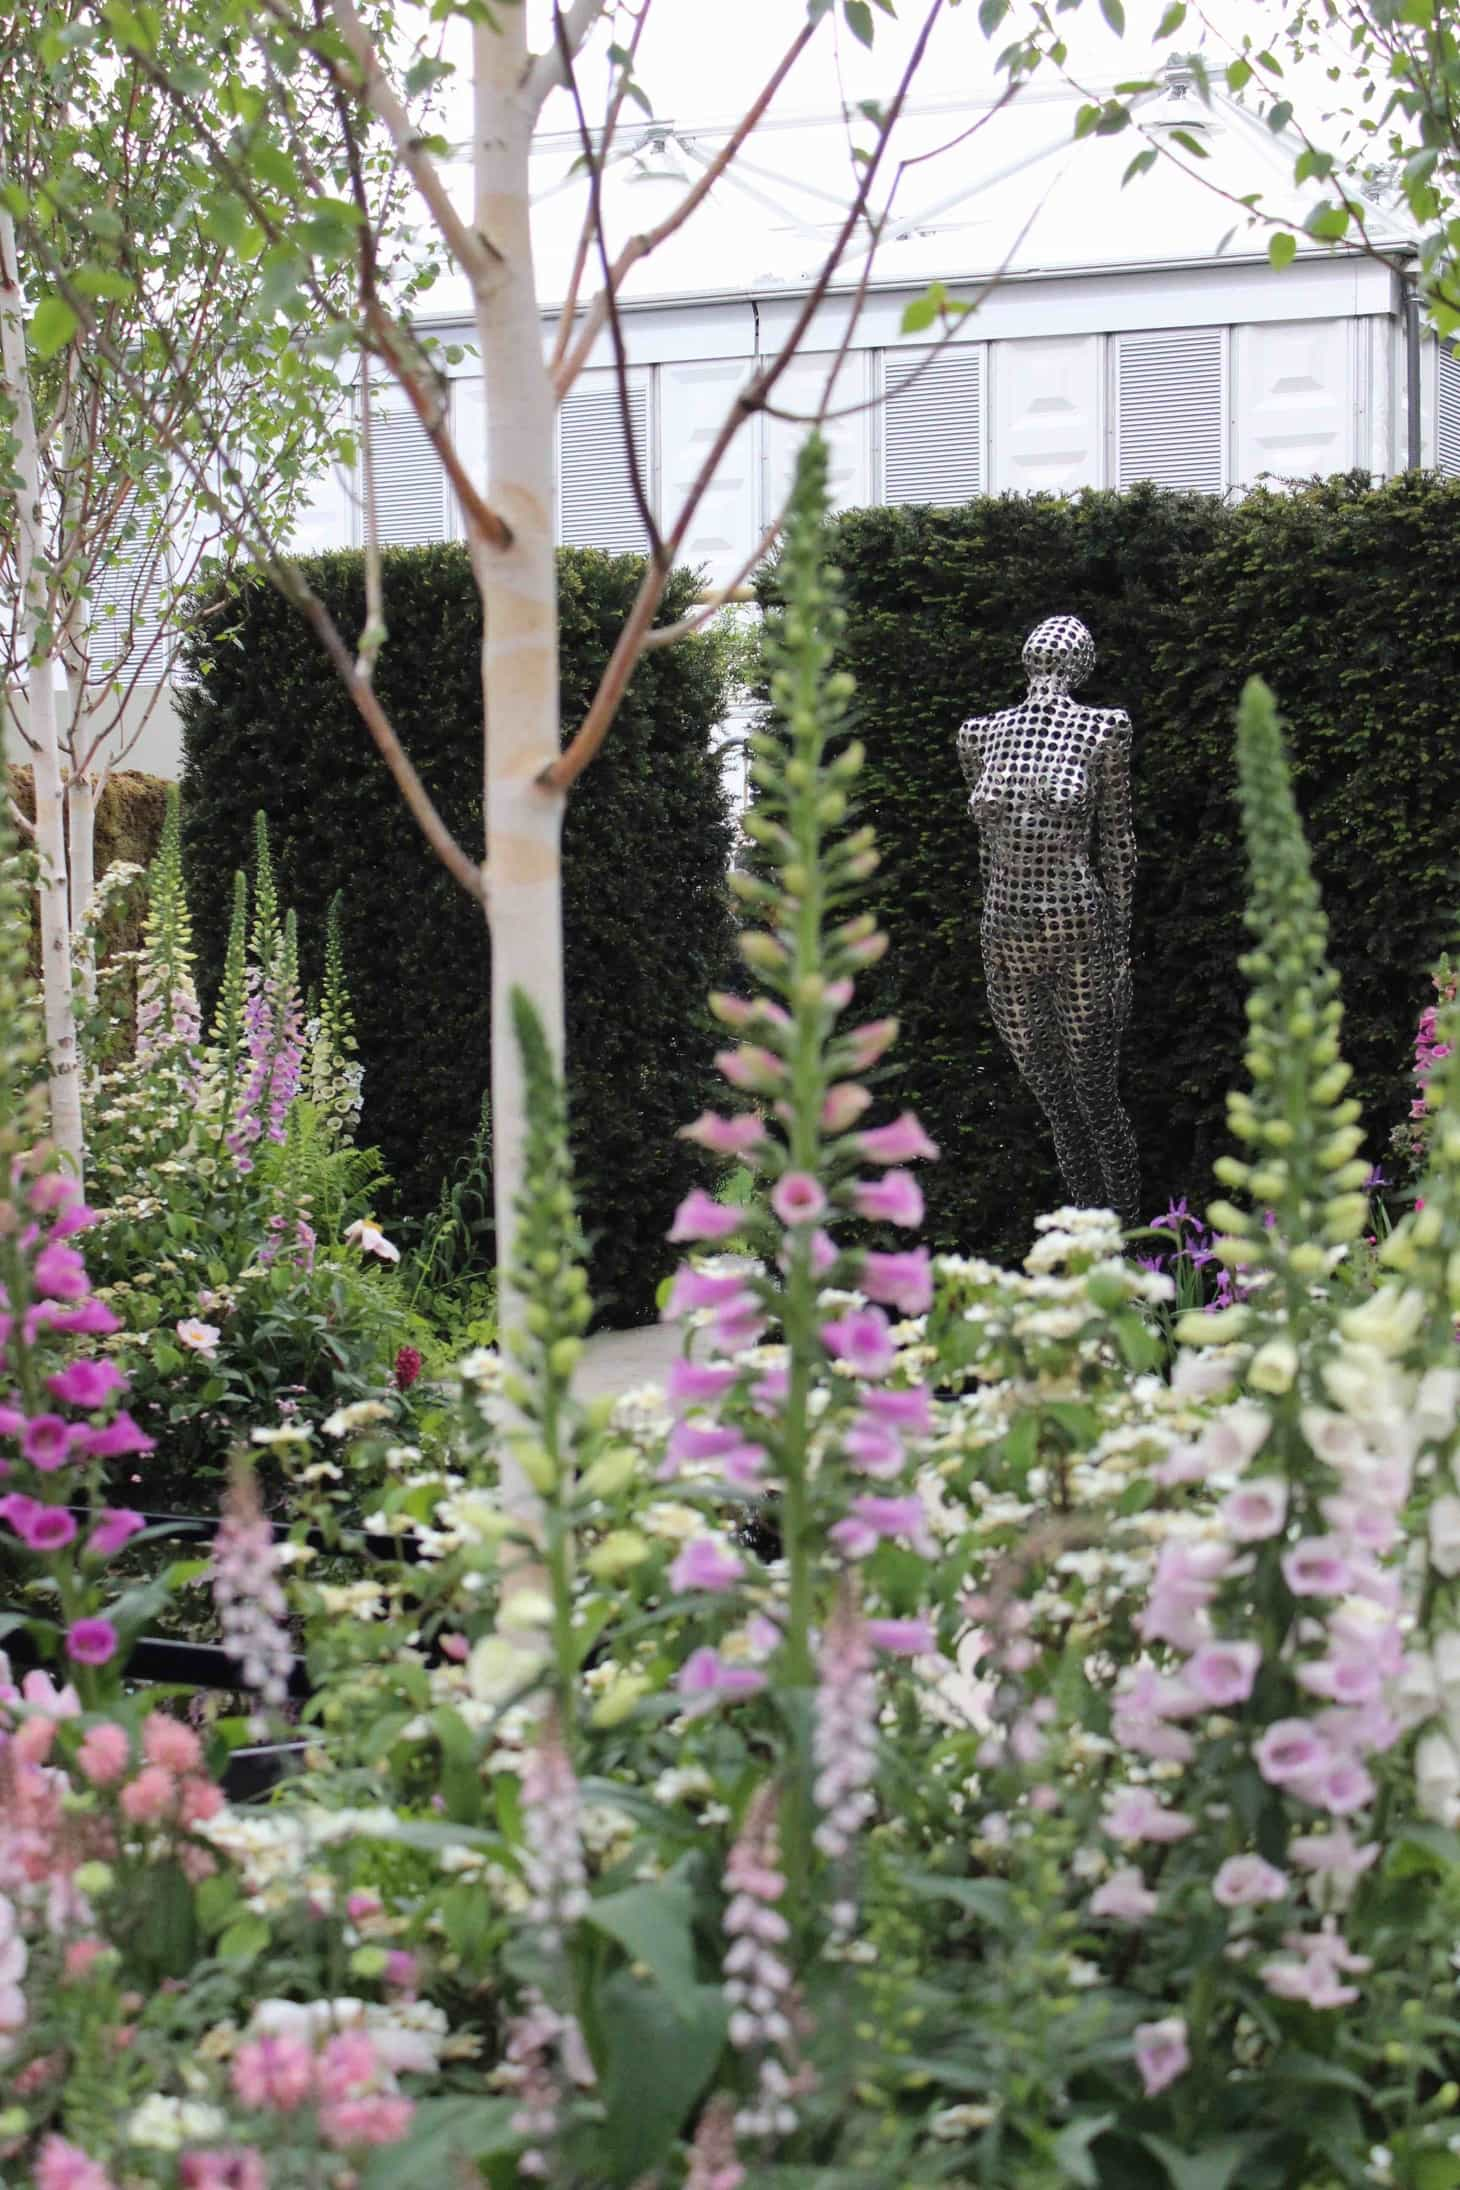 Chelsea flower show 2015, Lush roses, pink roses from chelsea, Garden roses, old roses, remembering chelsea flower show 2015, Breakthrough Breast Cancer Garden, Foxgloves and Lupiniums